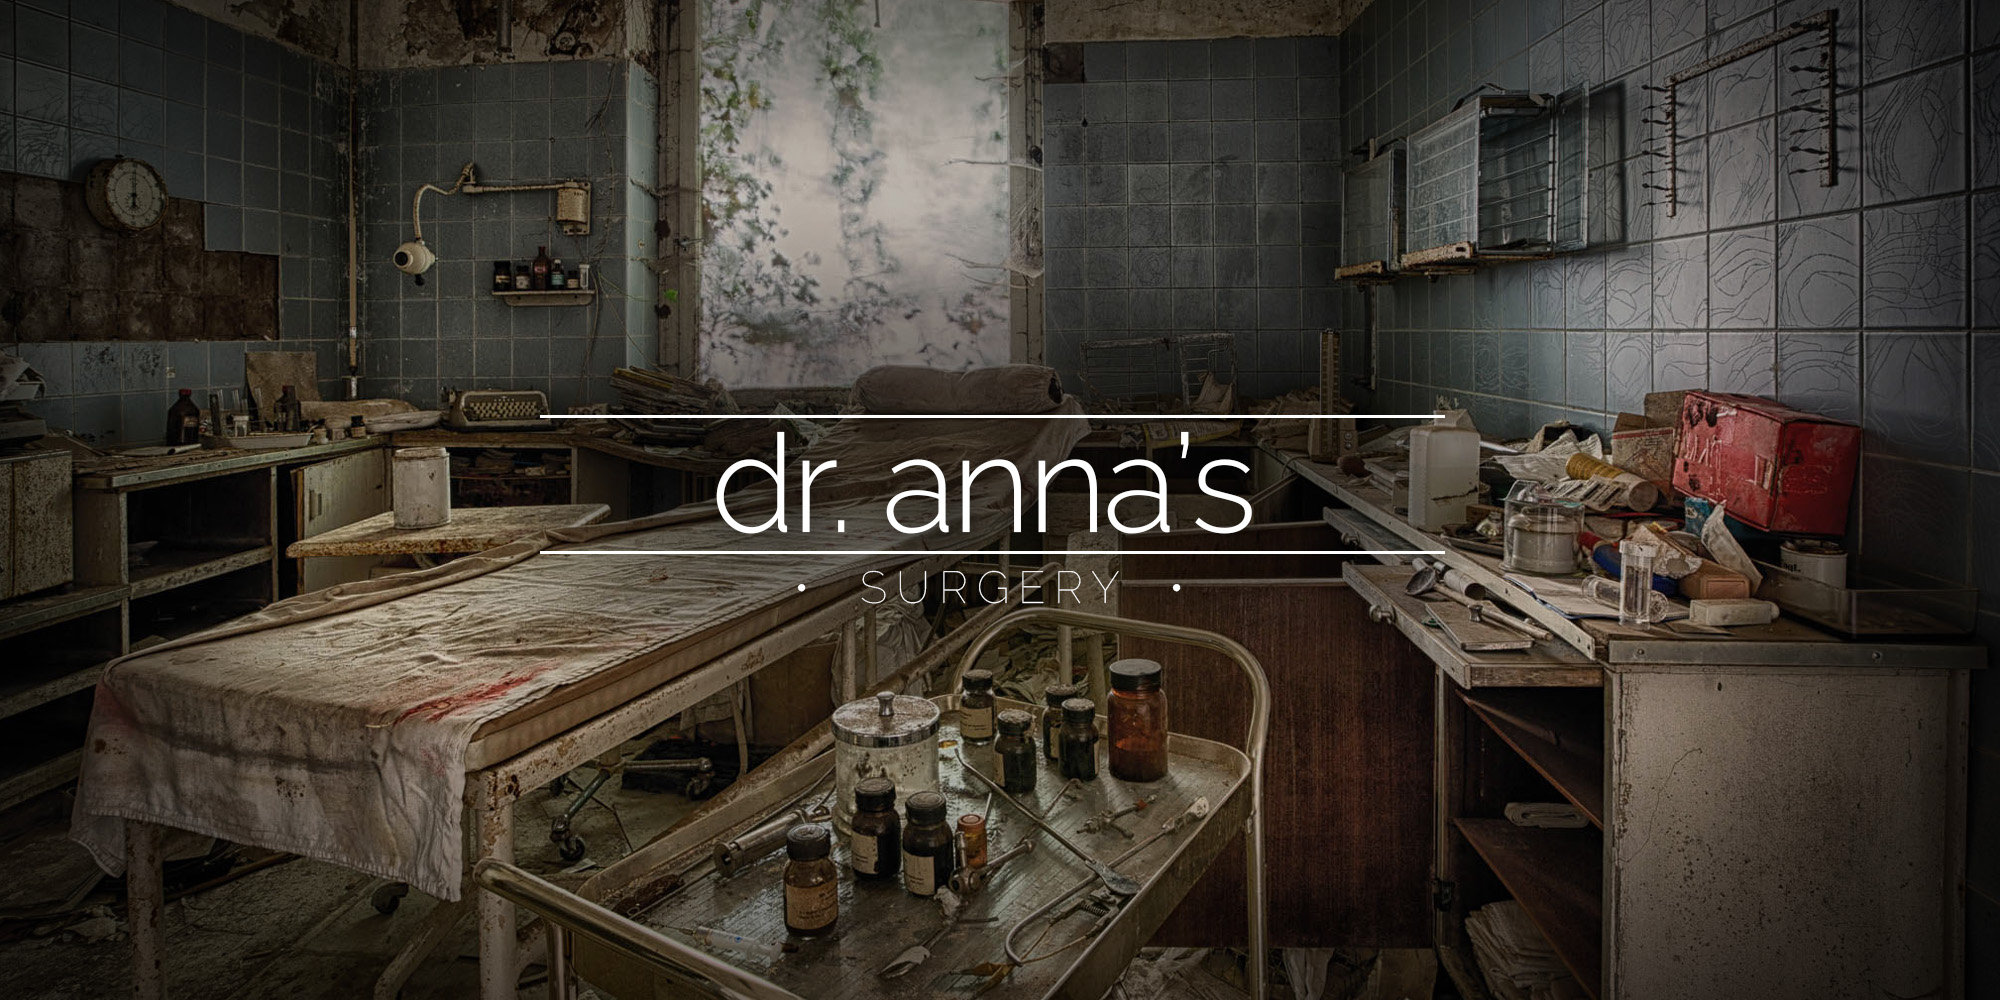 Dr Annas House and Surgery